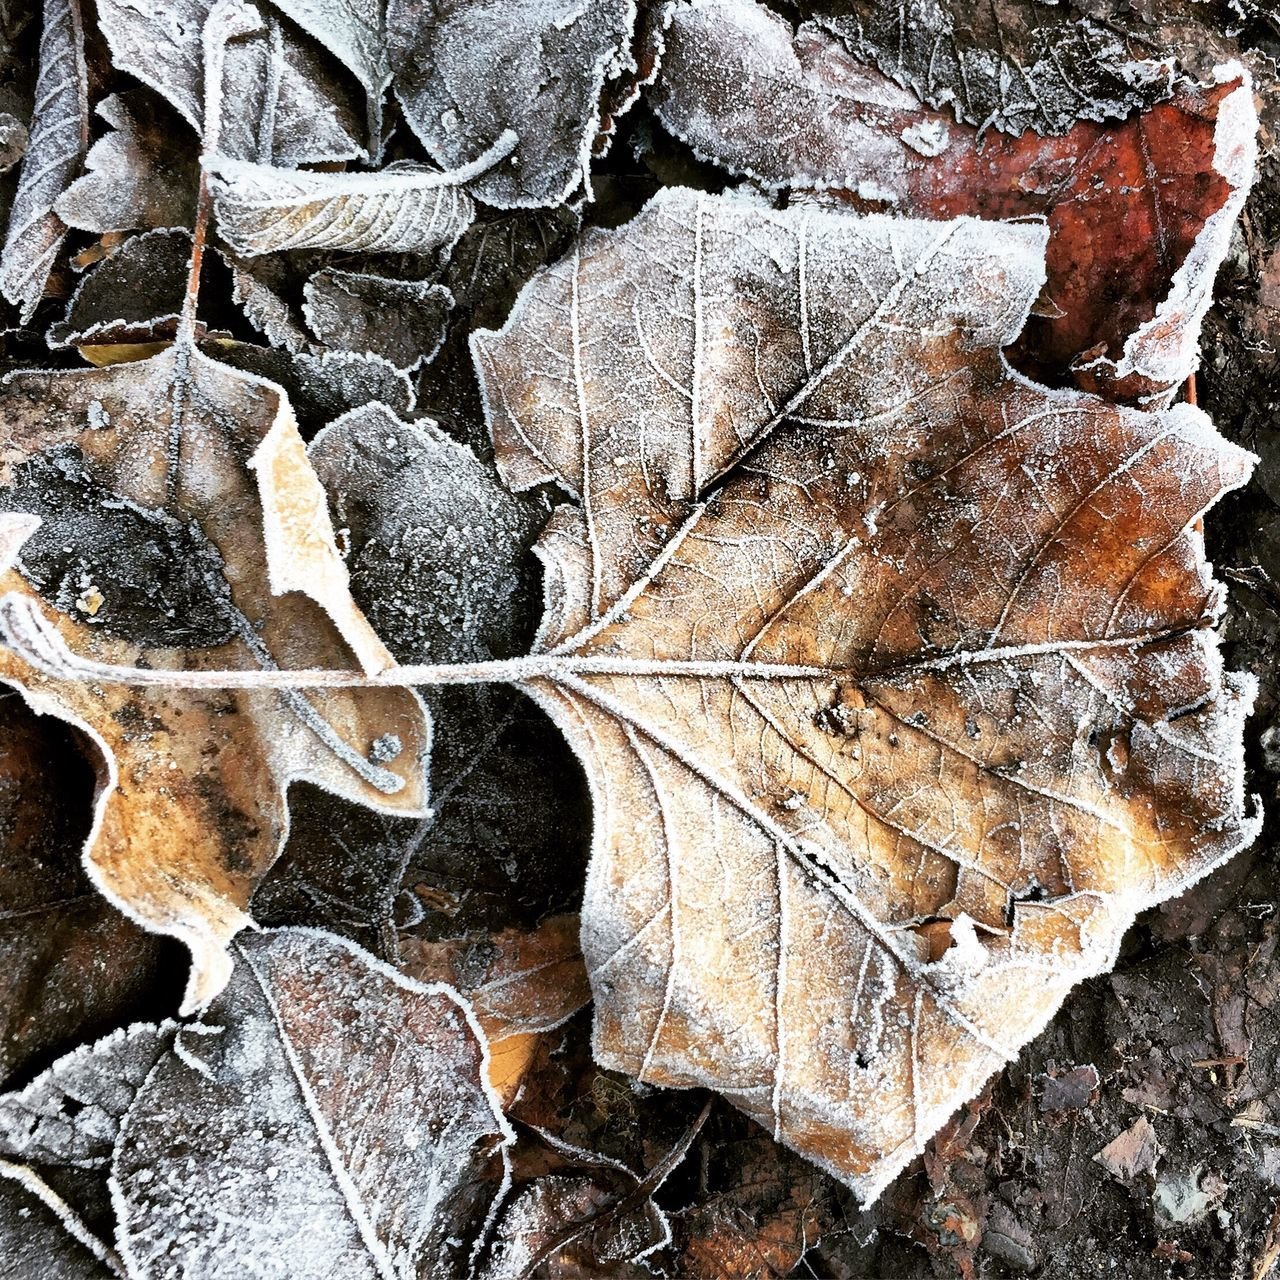 leaf, autumn, no people, change, full frame, nature, backgrounds, fragility, close-up, day, outdoors